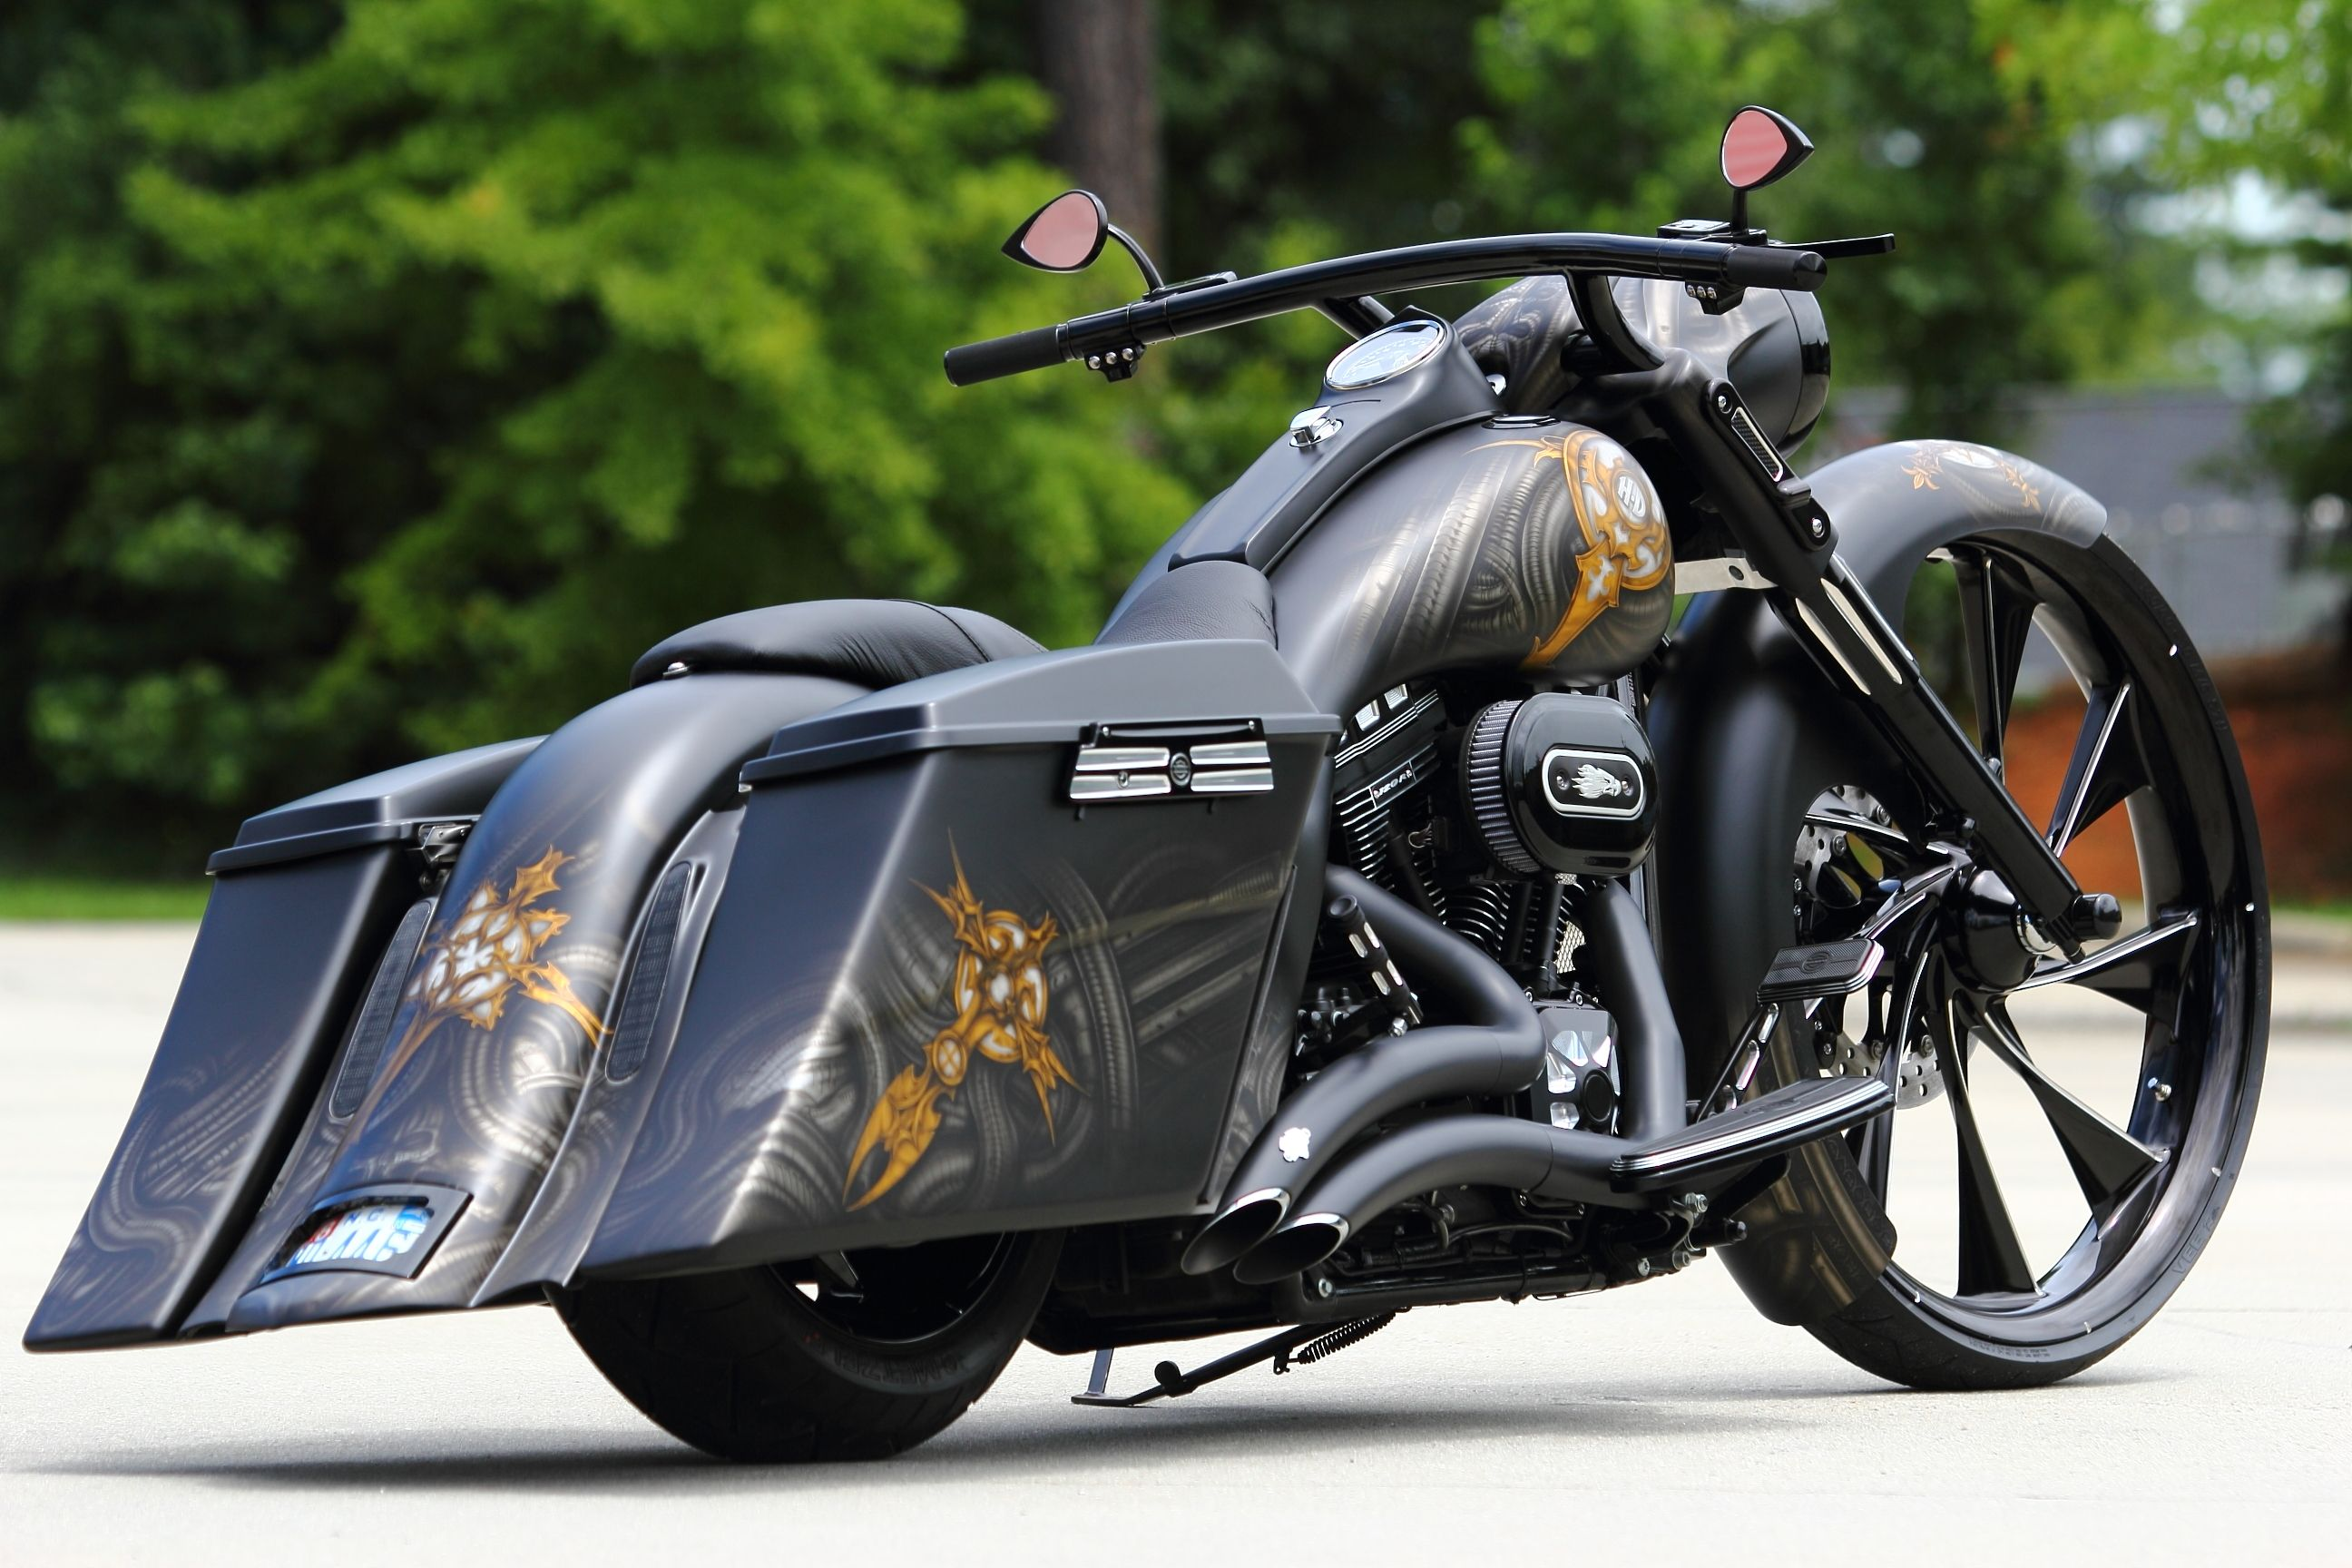 bagger road king pics 2012 road king custom bagger 30 wheel 120r screamin baggers. Black Bedroom Furniture Sets. Home Design Ideas